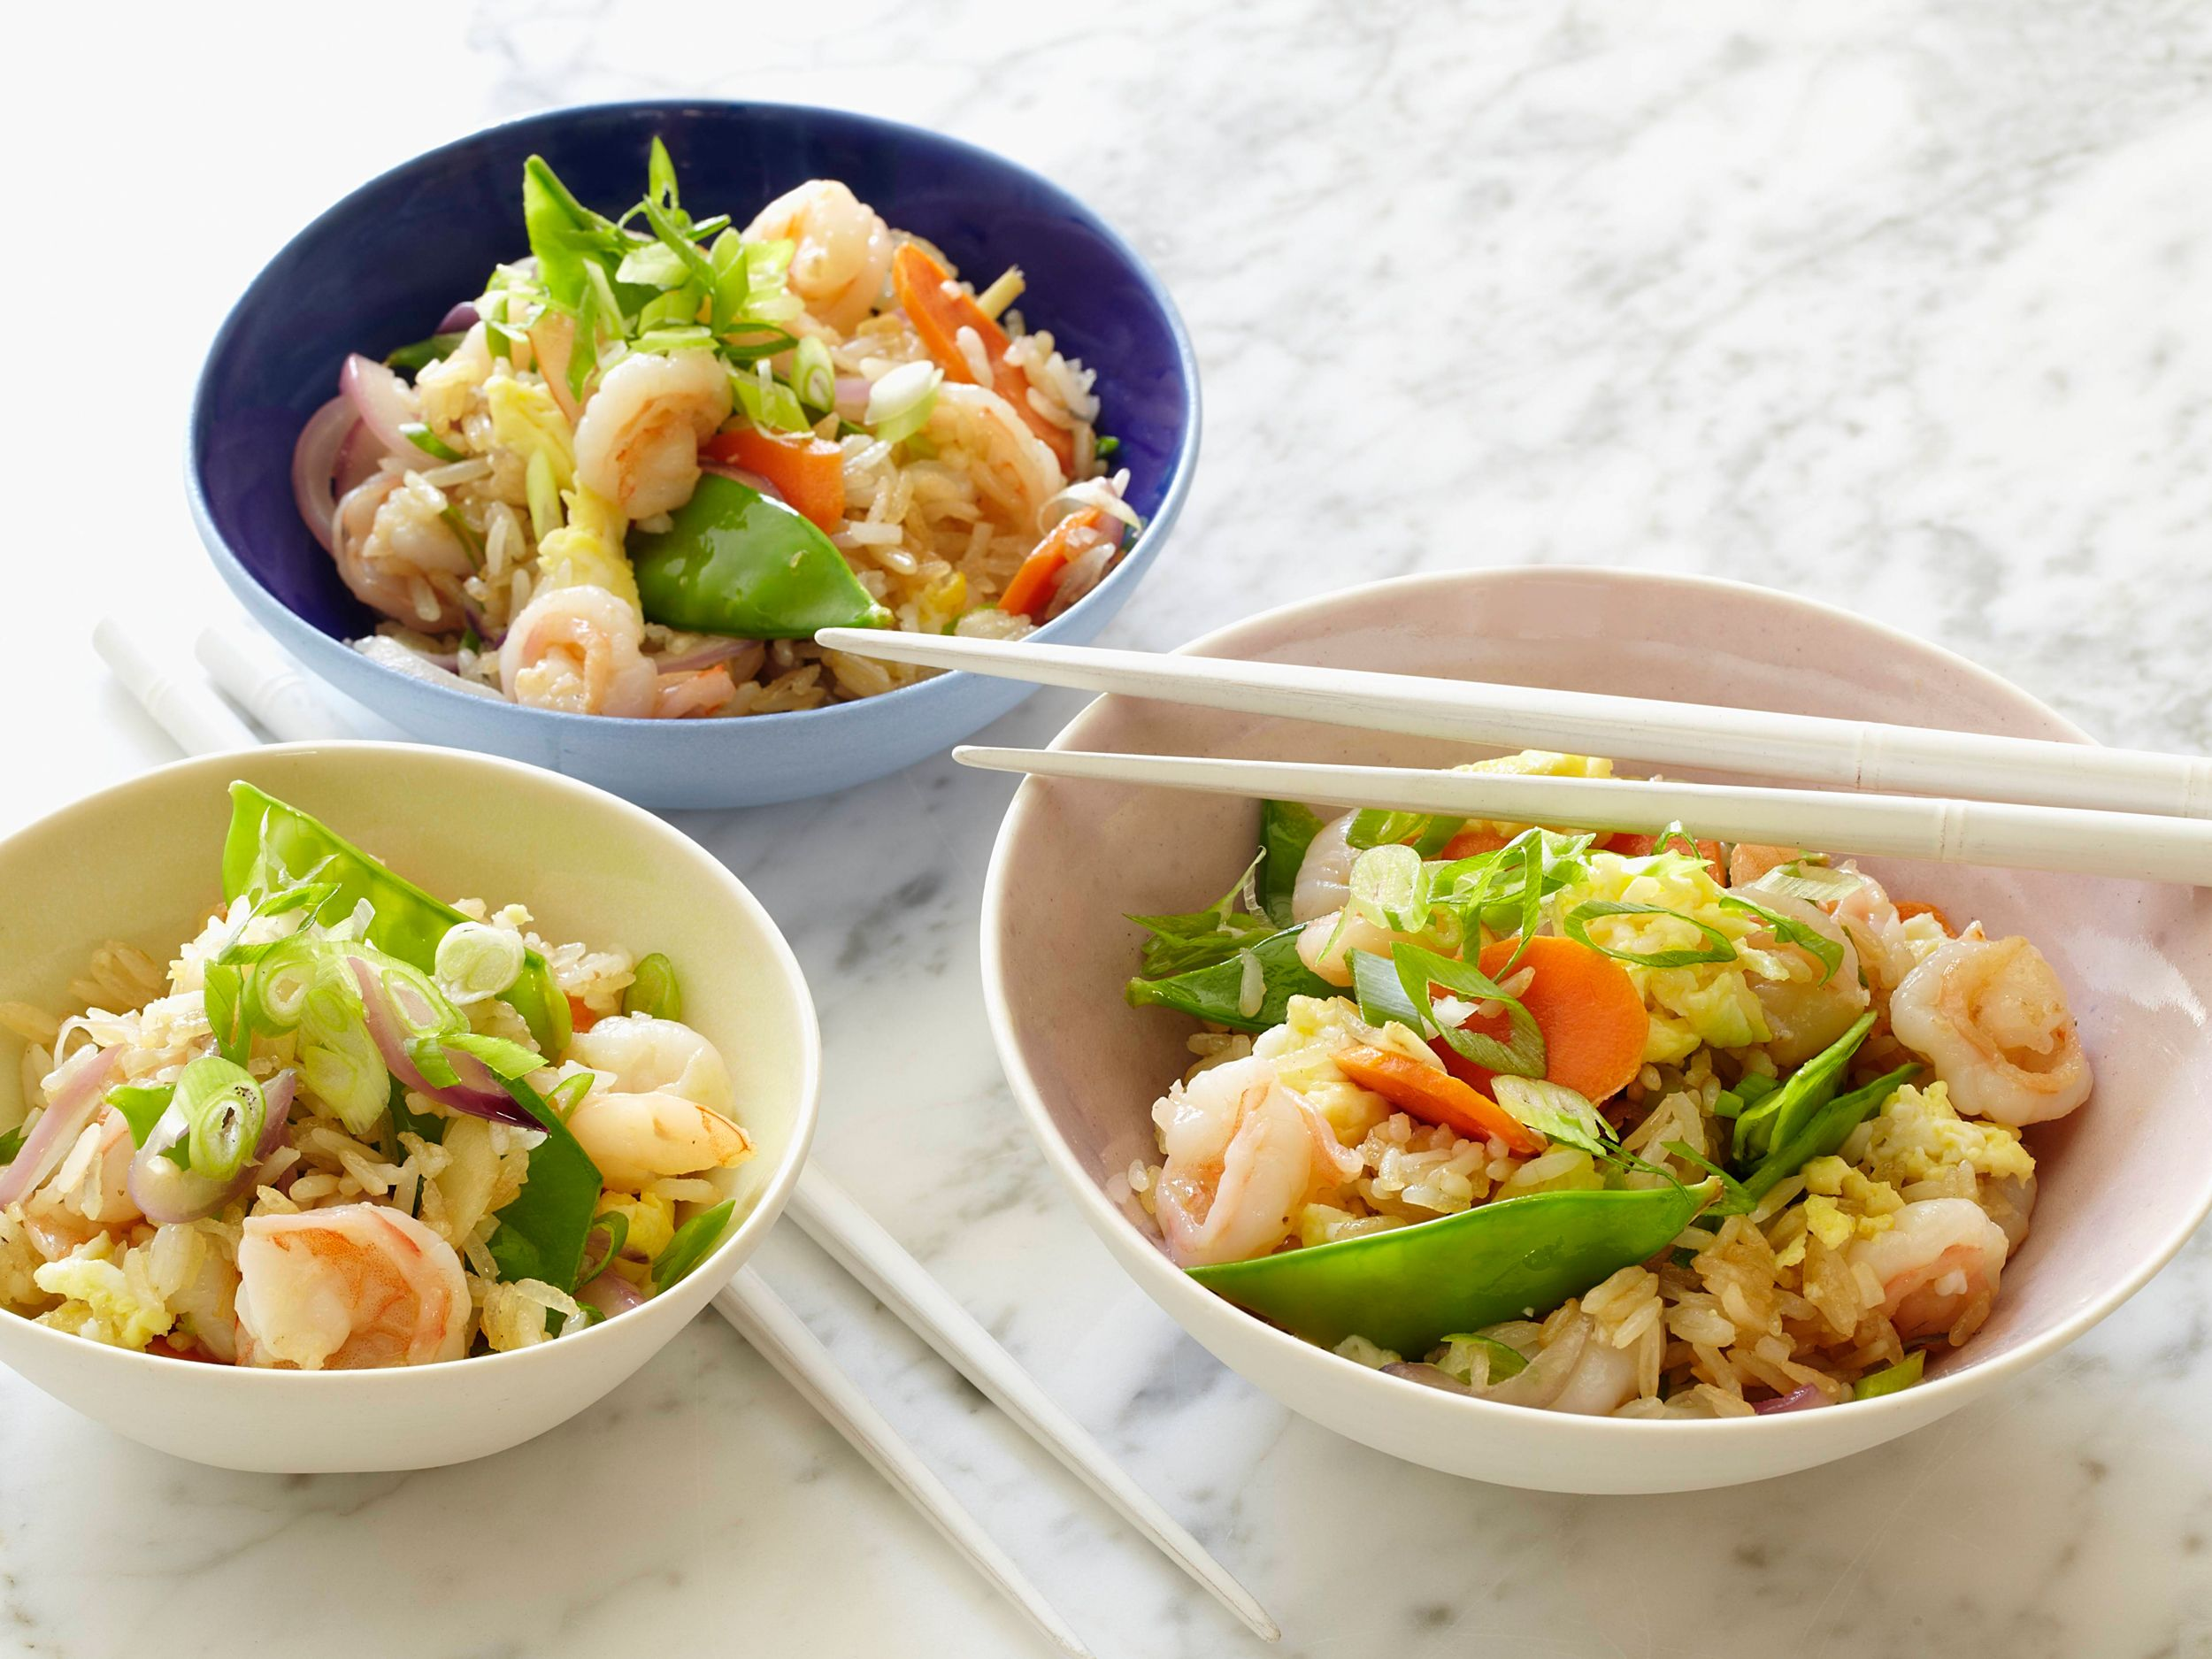 Food network healthy recipes - Healthy Chinese Recipes Food Network